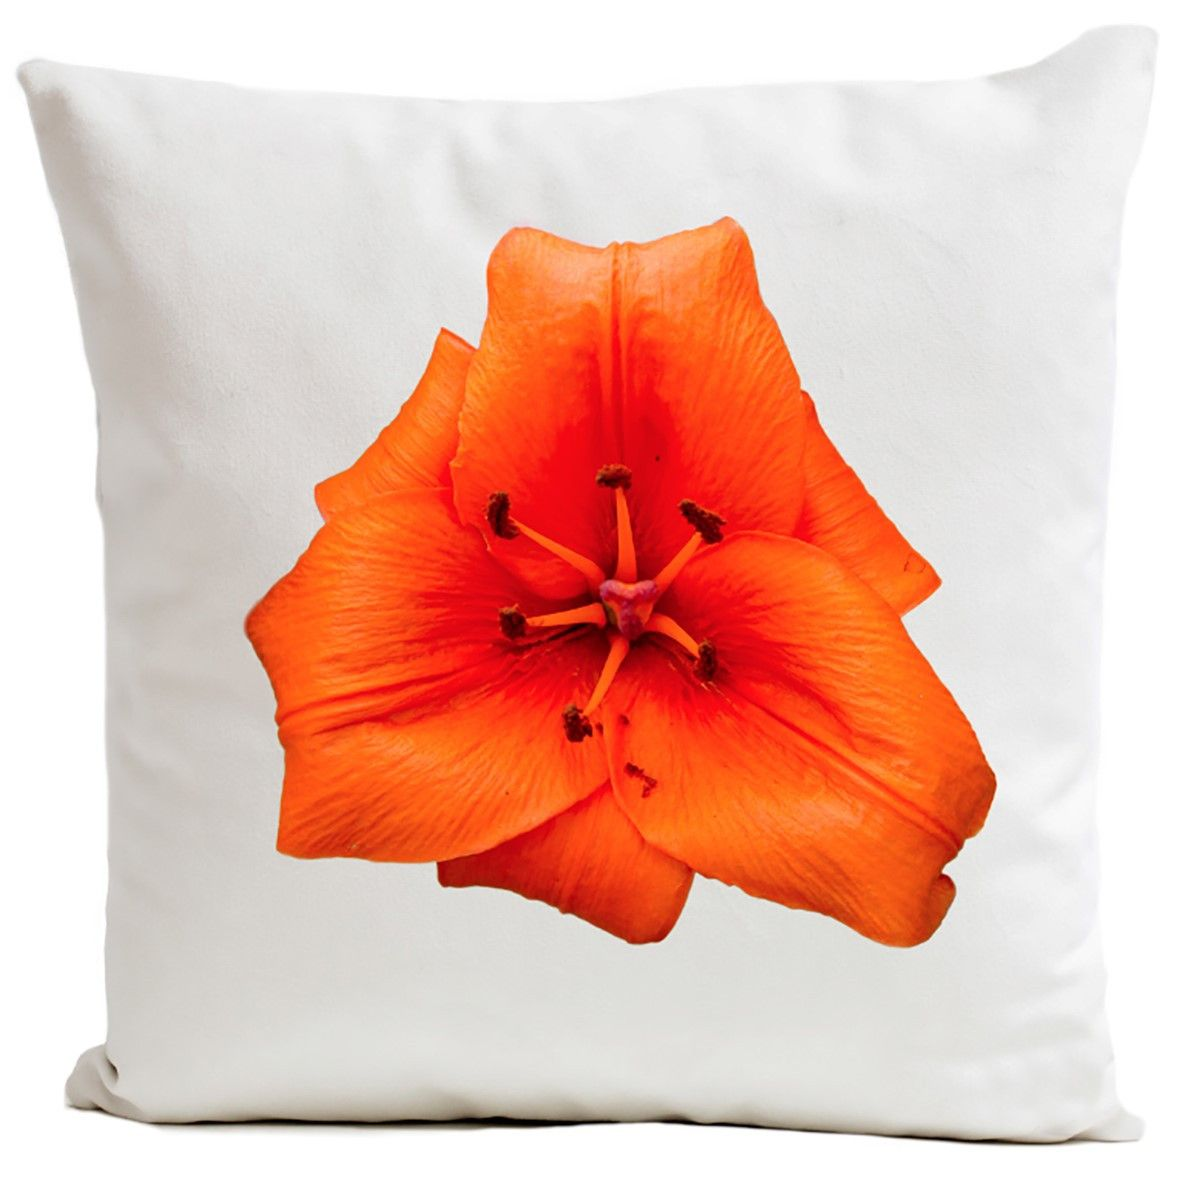 New selection is available artpilo cushion c tell us if you like